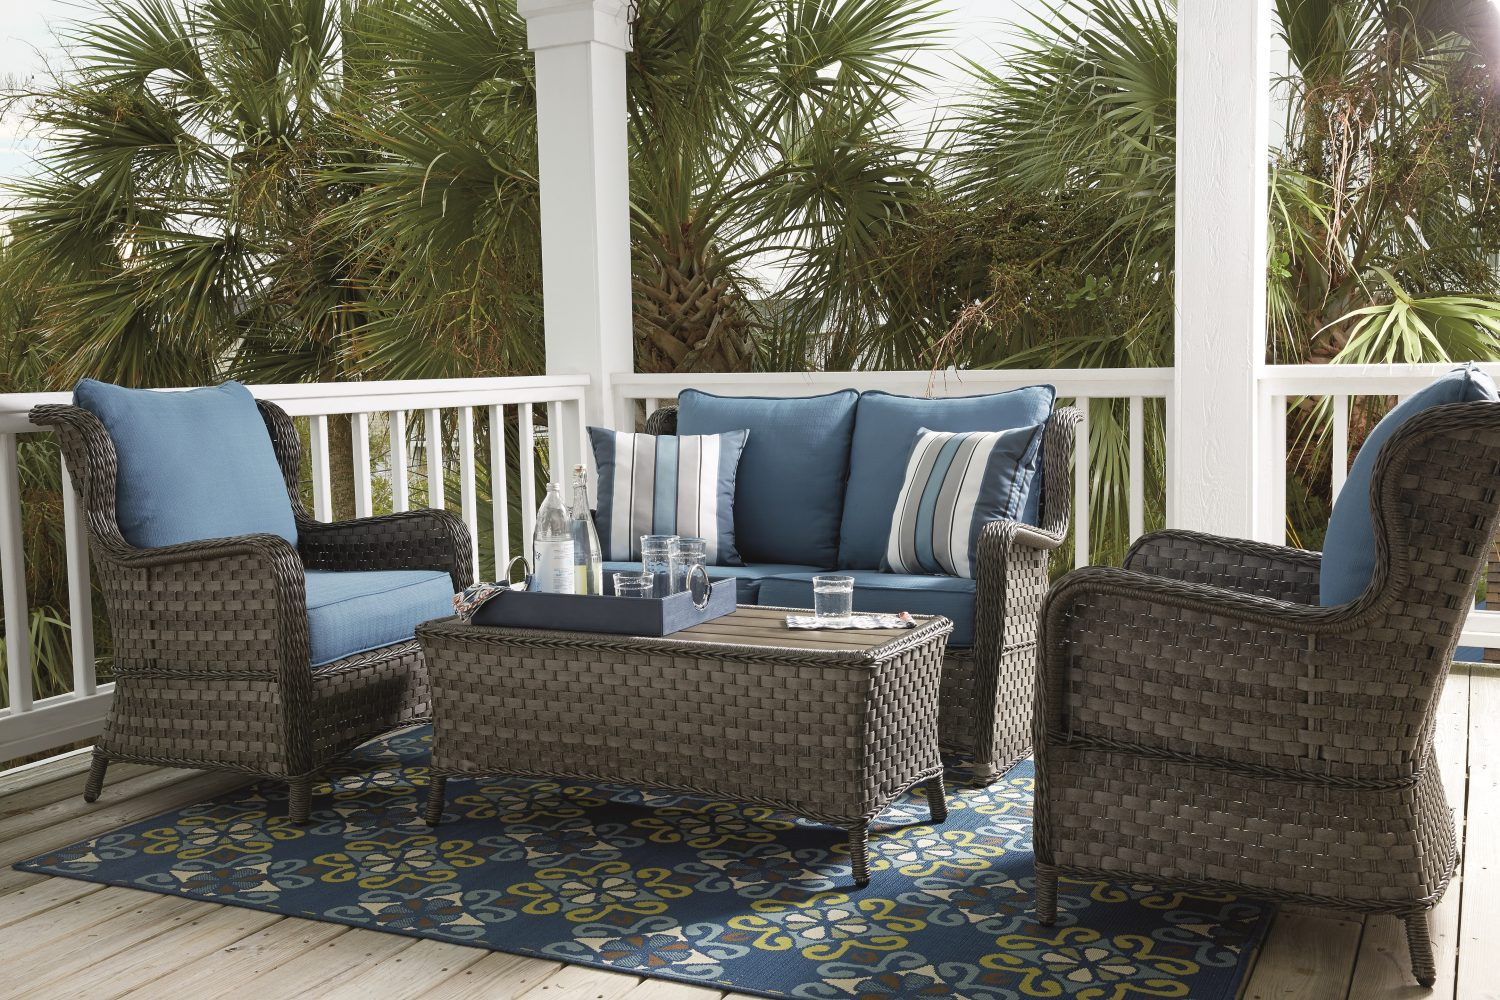 Enliven Outdoor Spaces With Rugs And Pillows Ashley